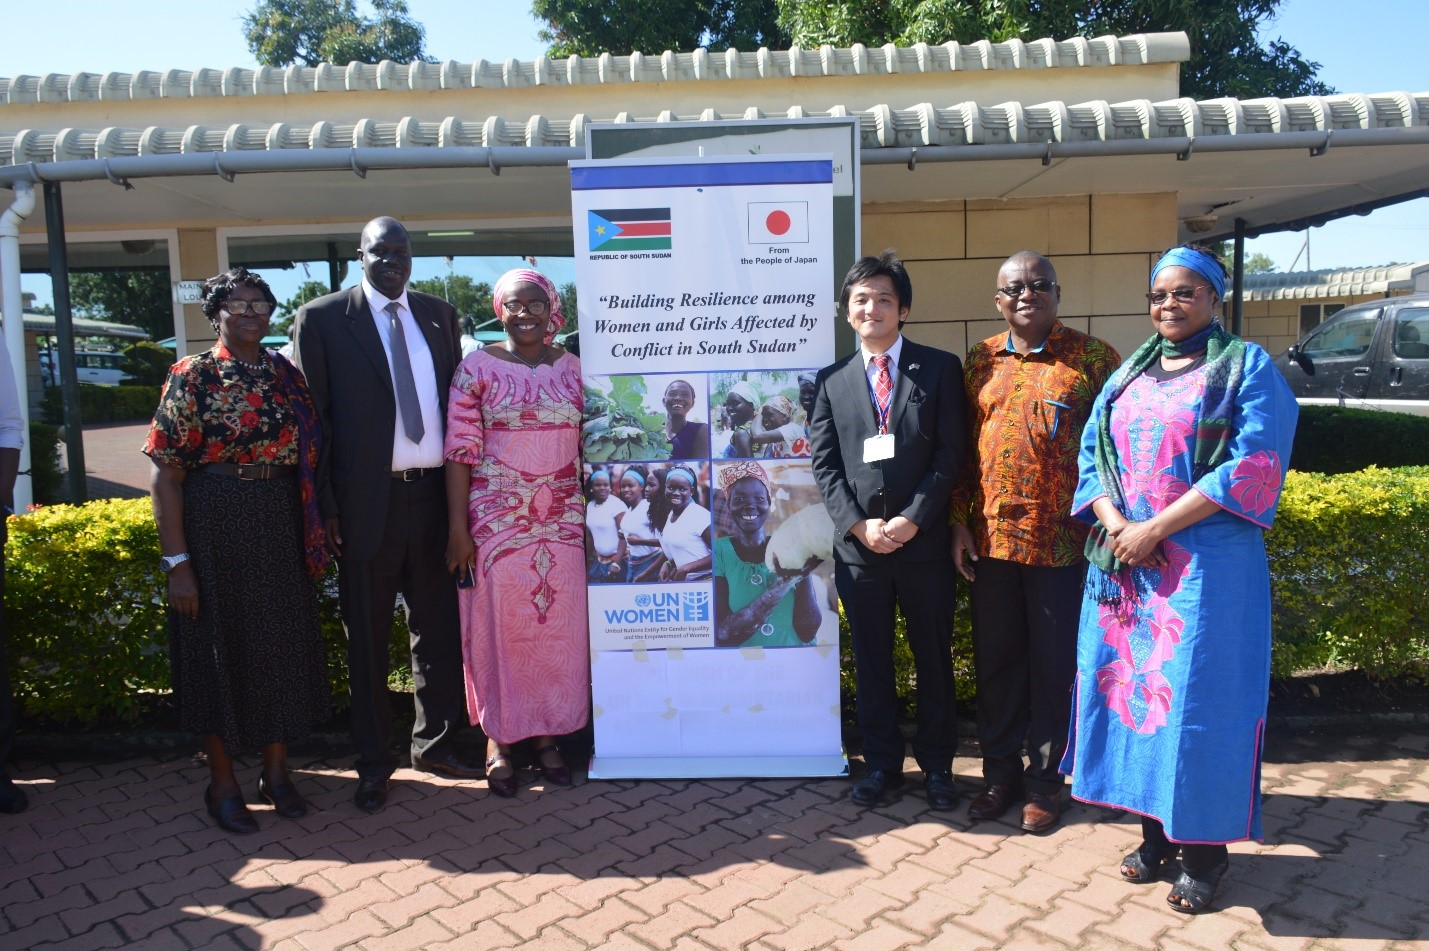 Strengthening humanitarian assistance for women and girls in South Sudan